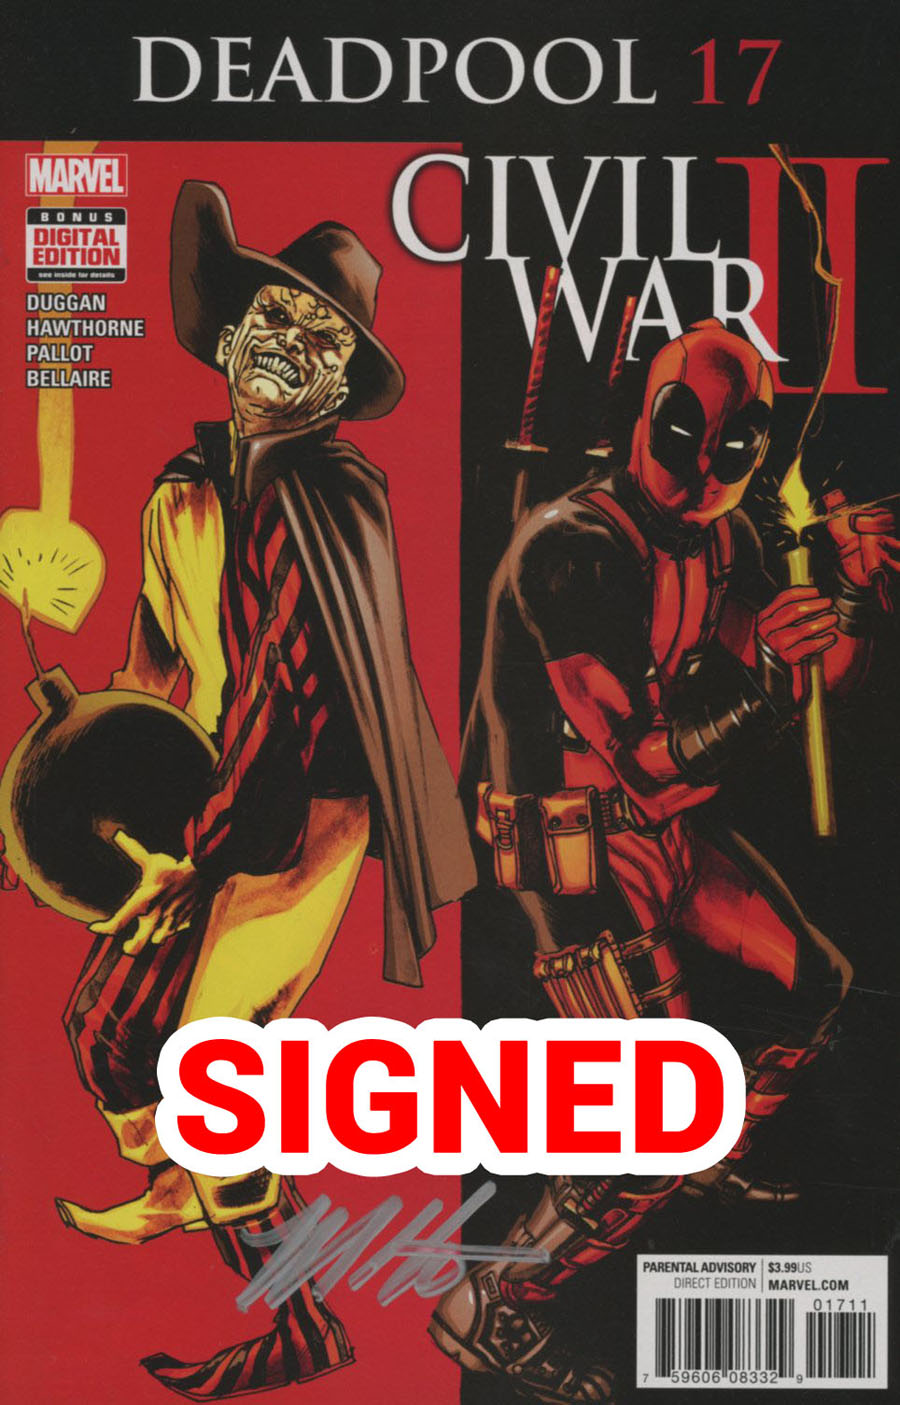 Deadpool Vol 5 #17 Cover D Regular Rafael Albuquerque Cover Signed By Mike Hawthorne (Civil War II Tie-In)